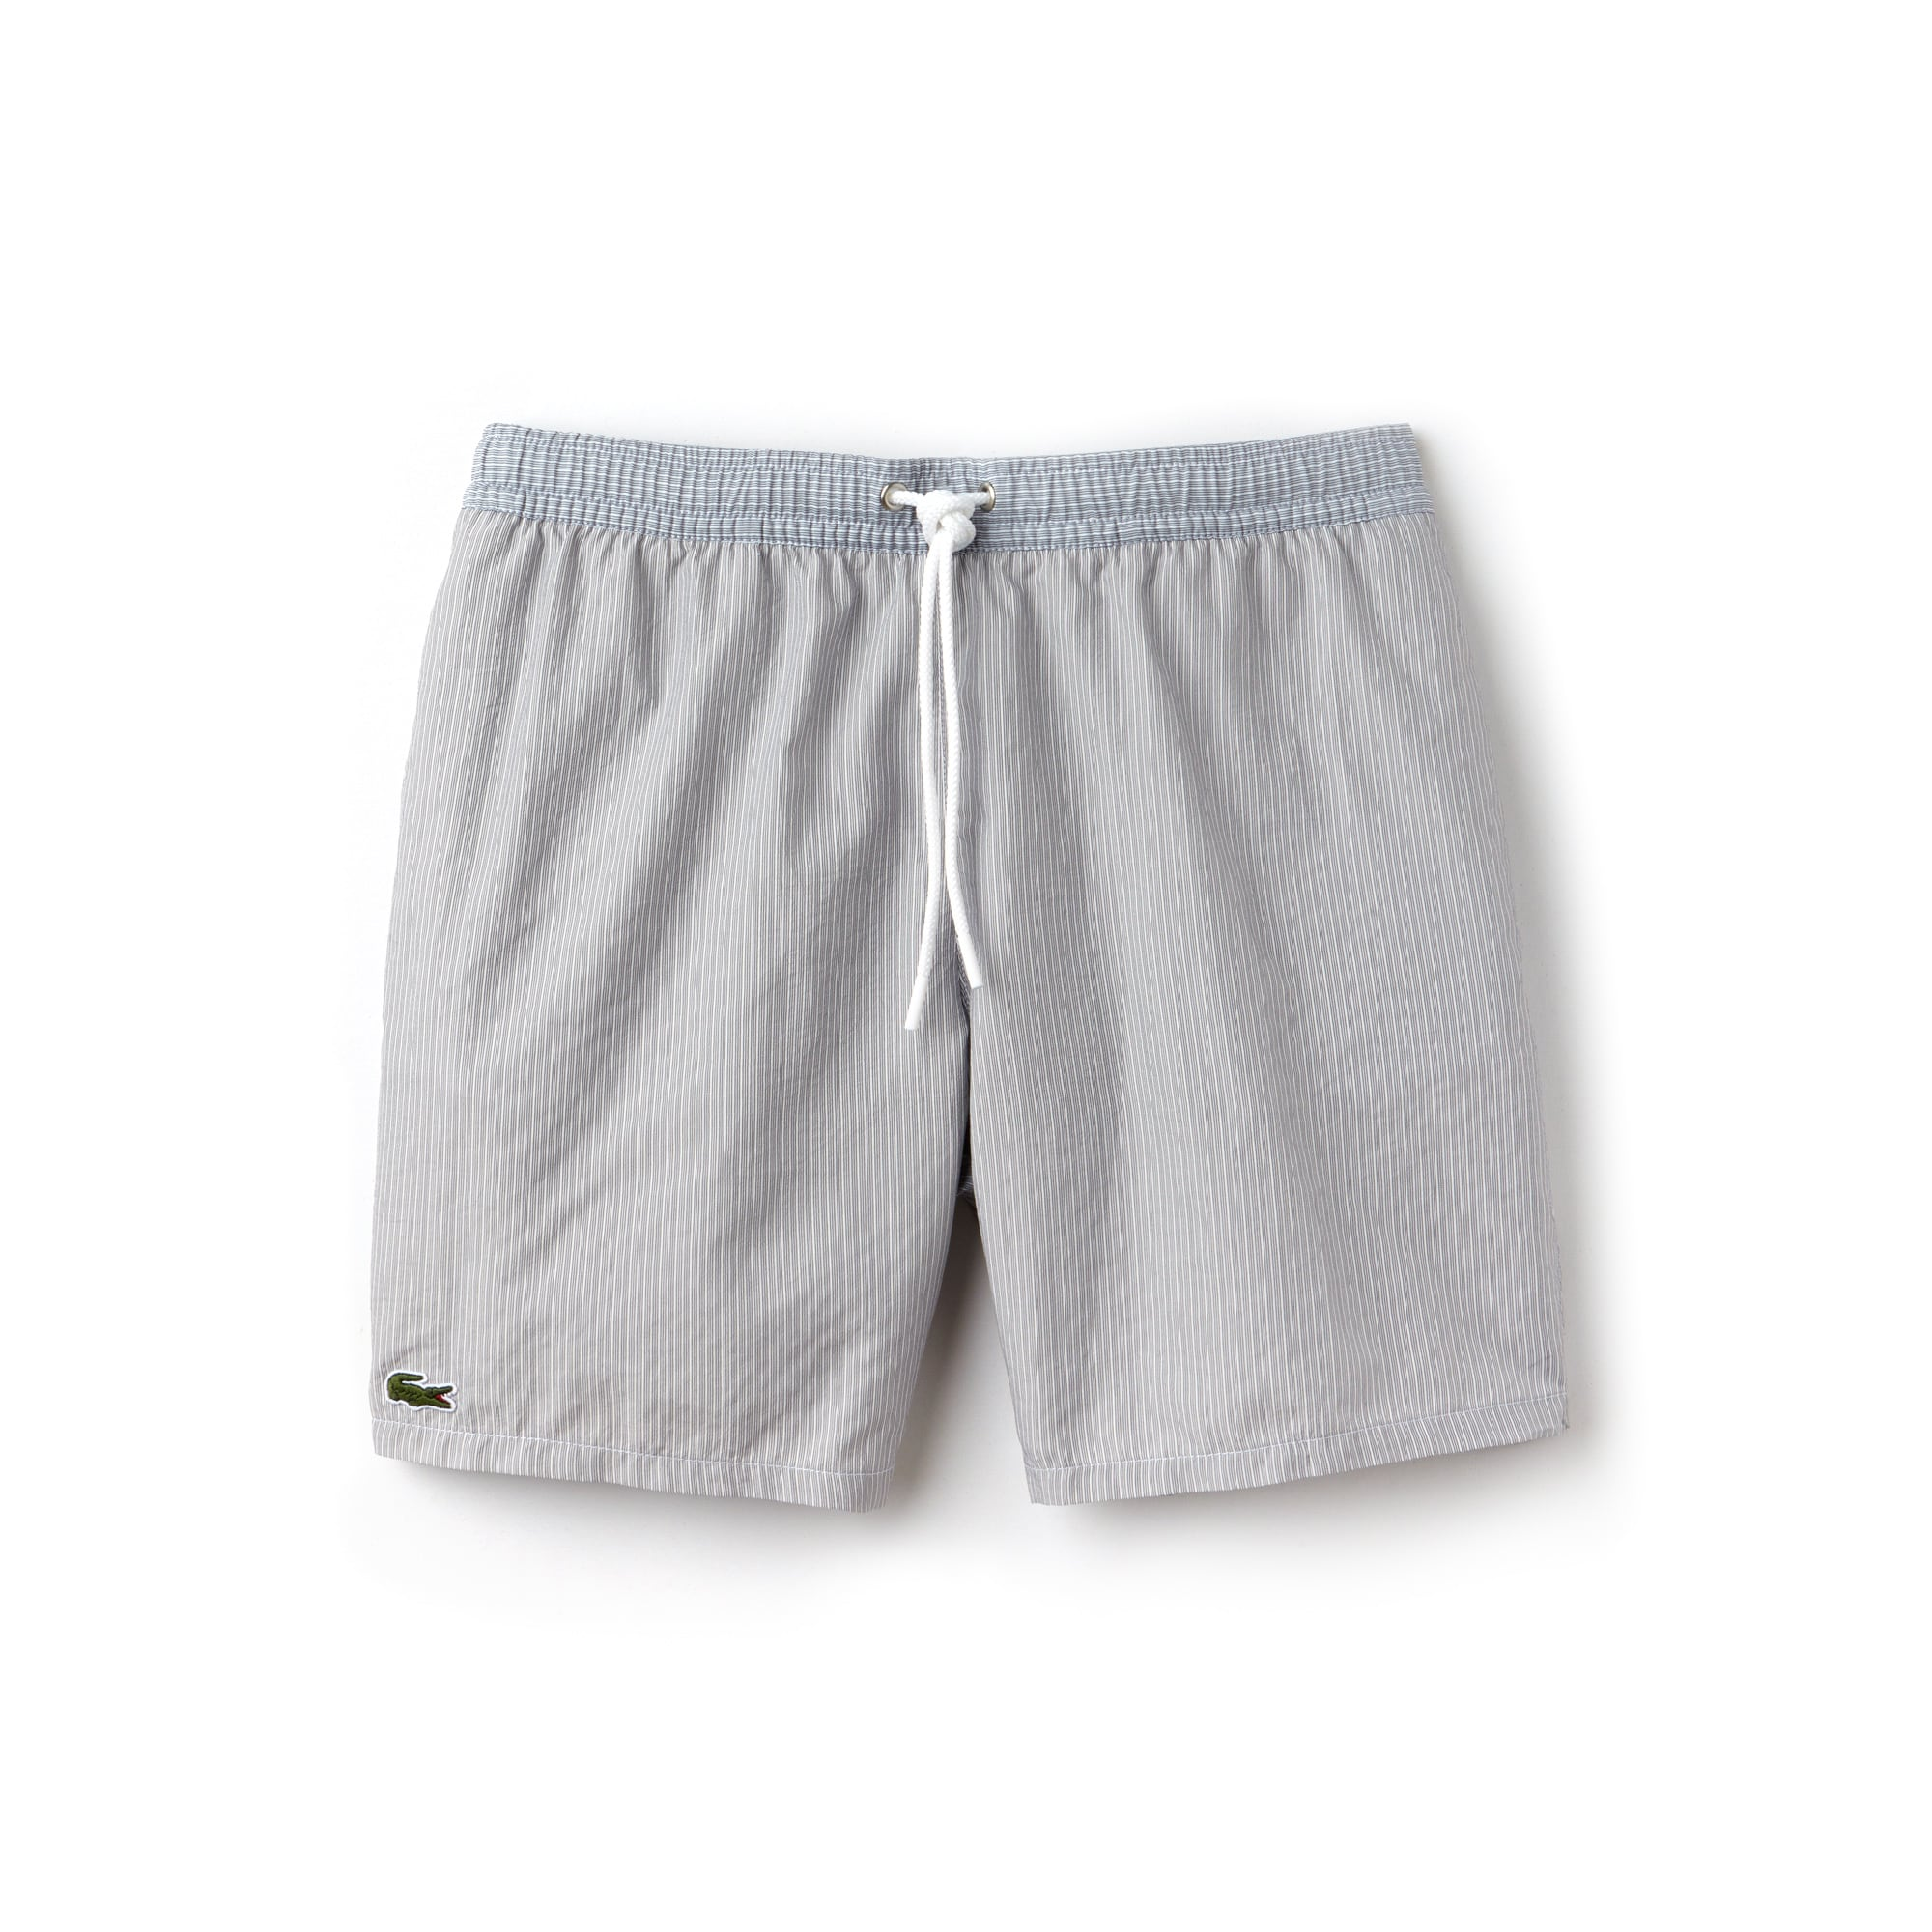 Men's Seersucker Swimming Trunks